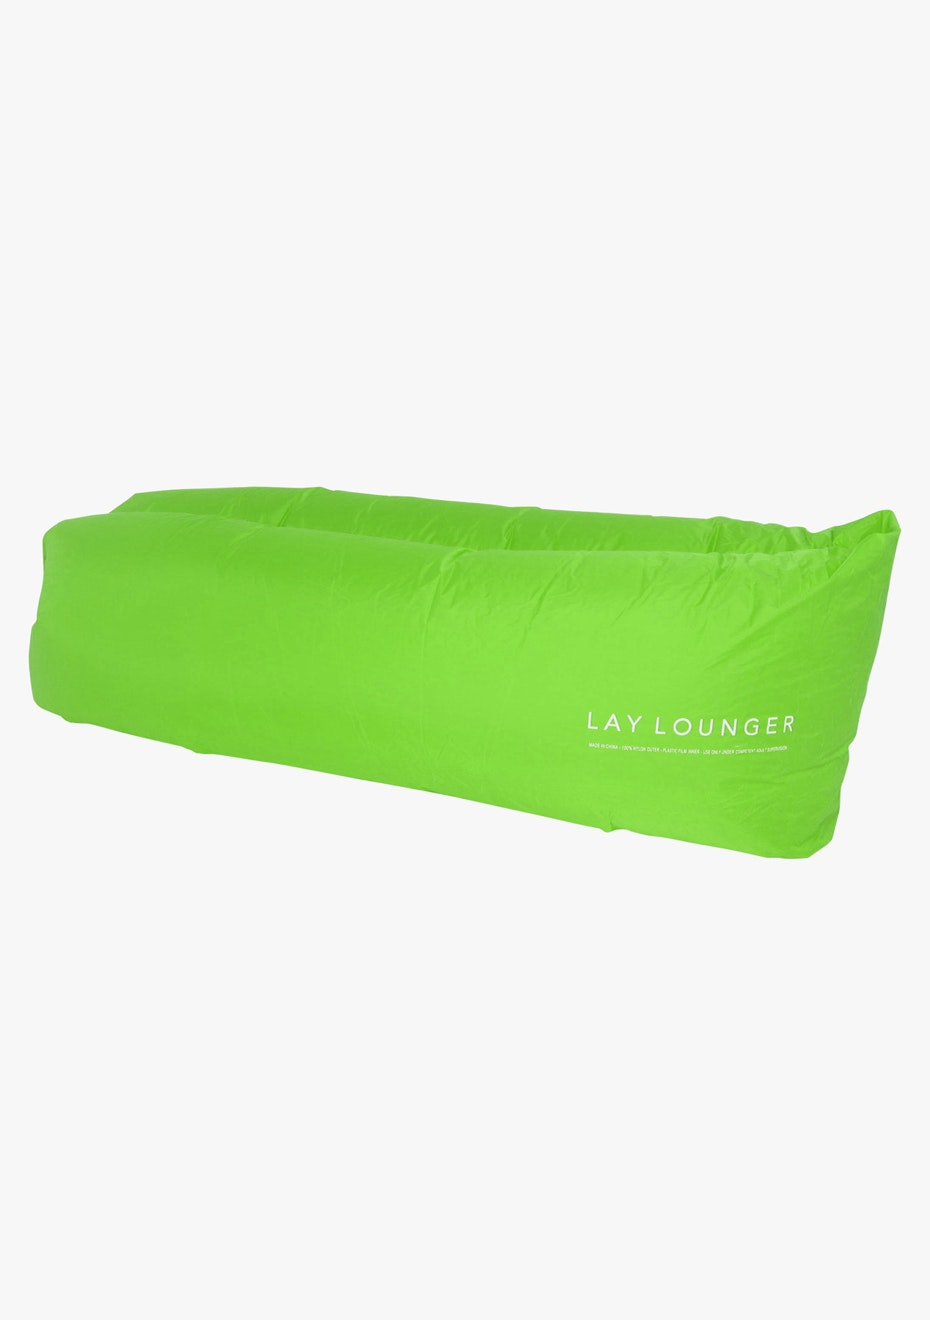 Lay Lounger Lounge Bag - Bright Green